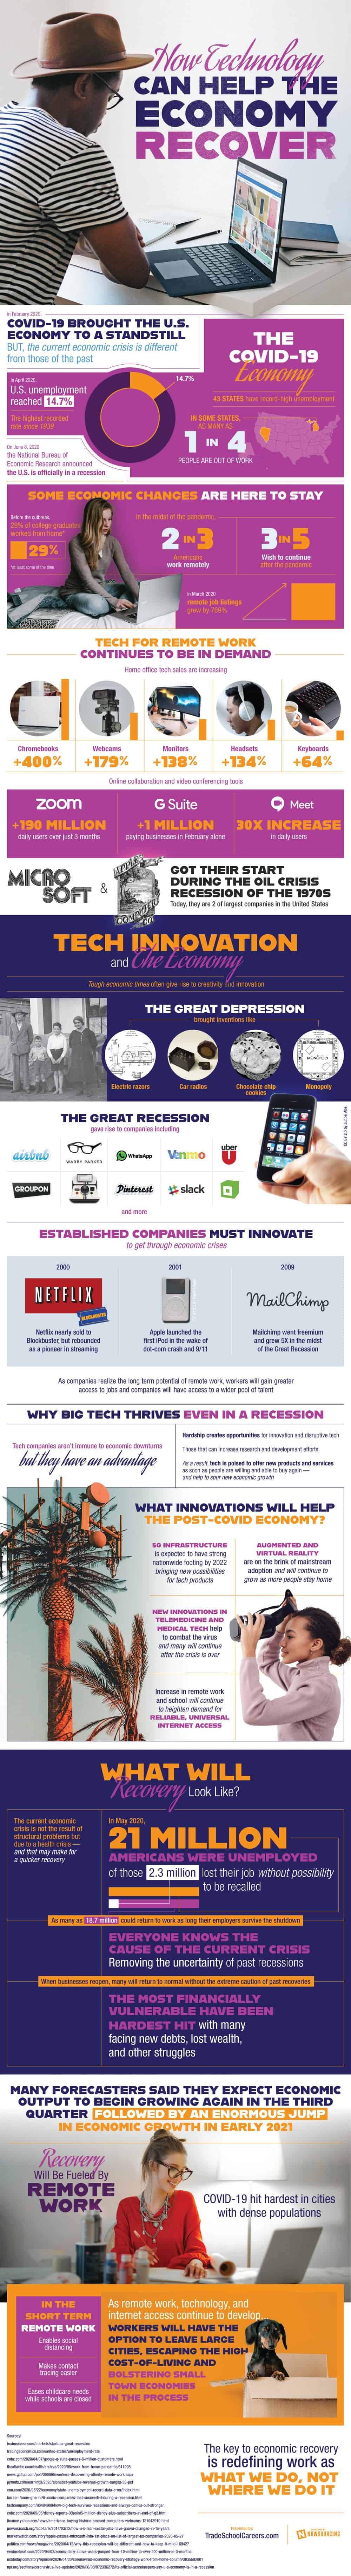 How Technology Can Help The Economy Recover #infographic